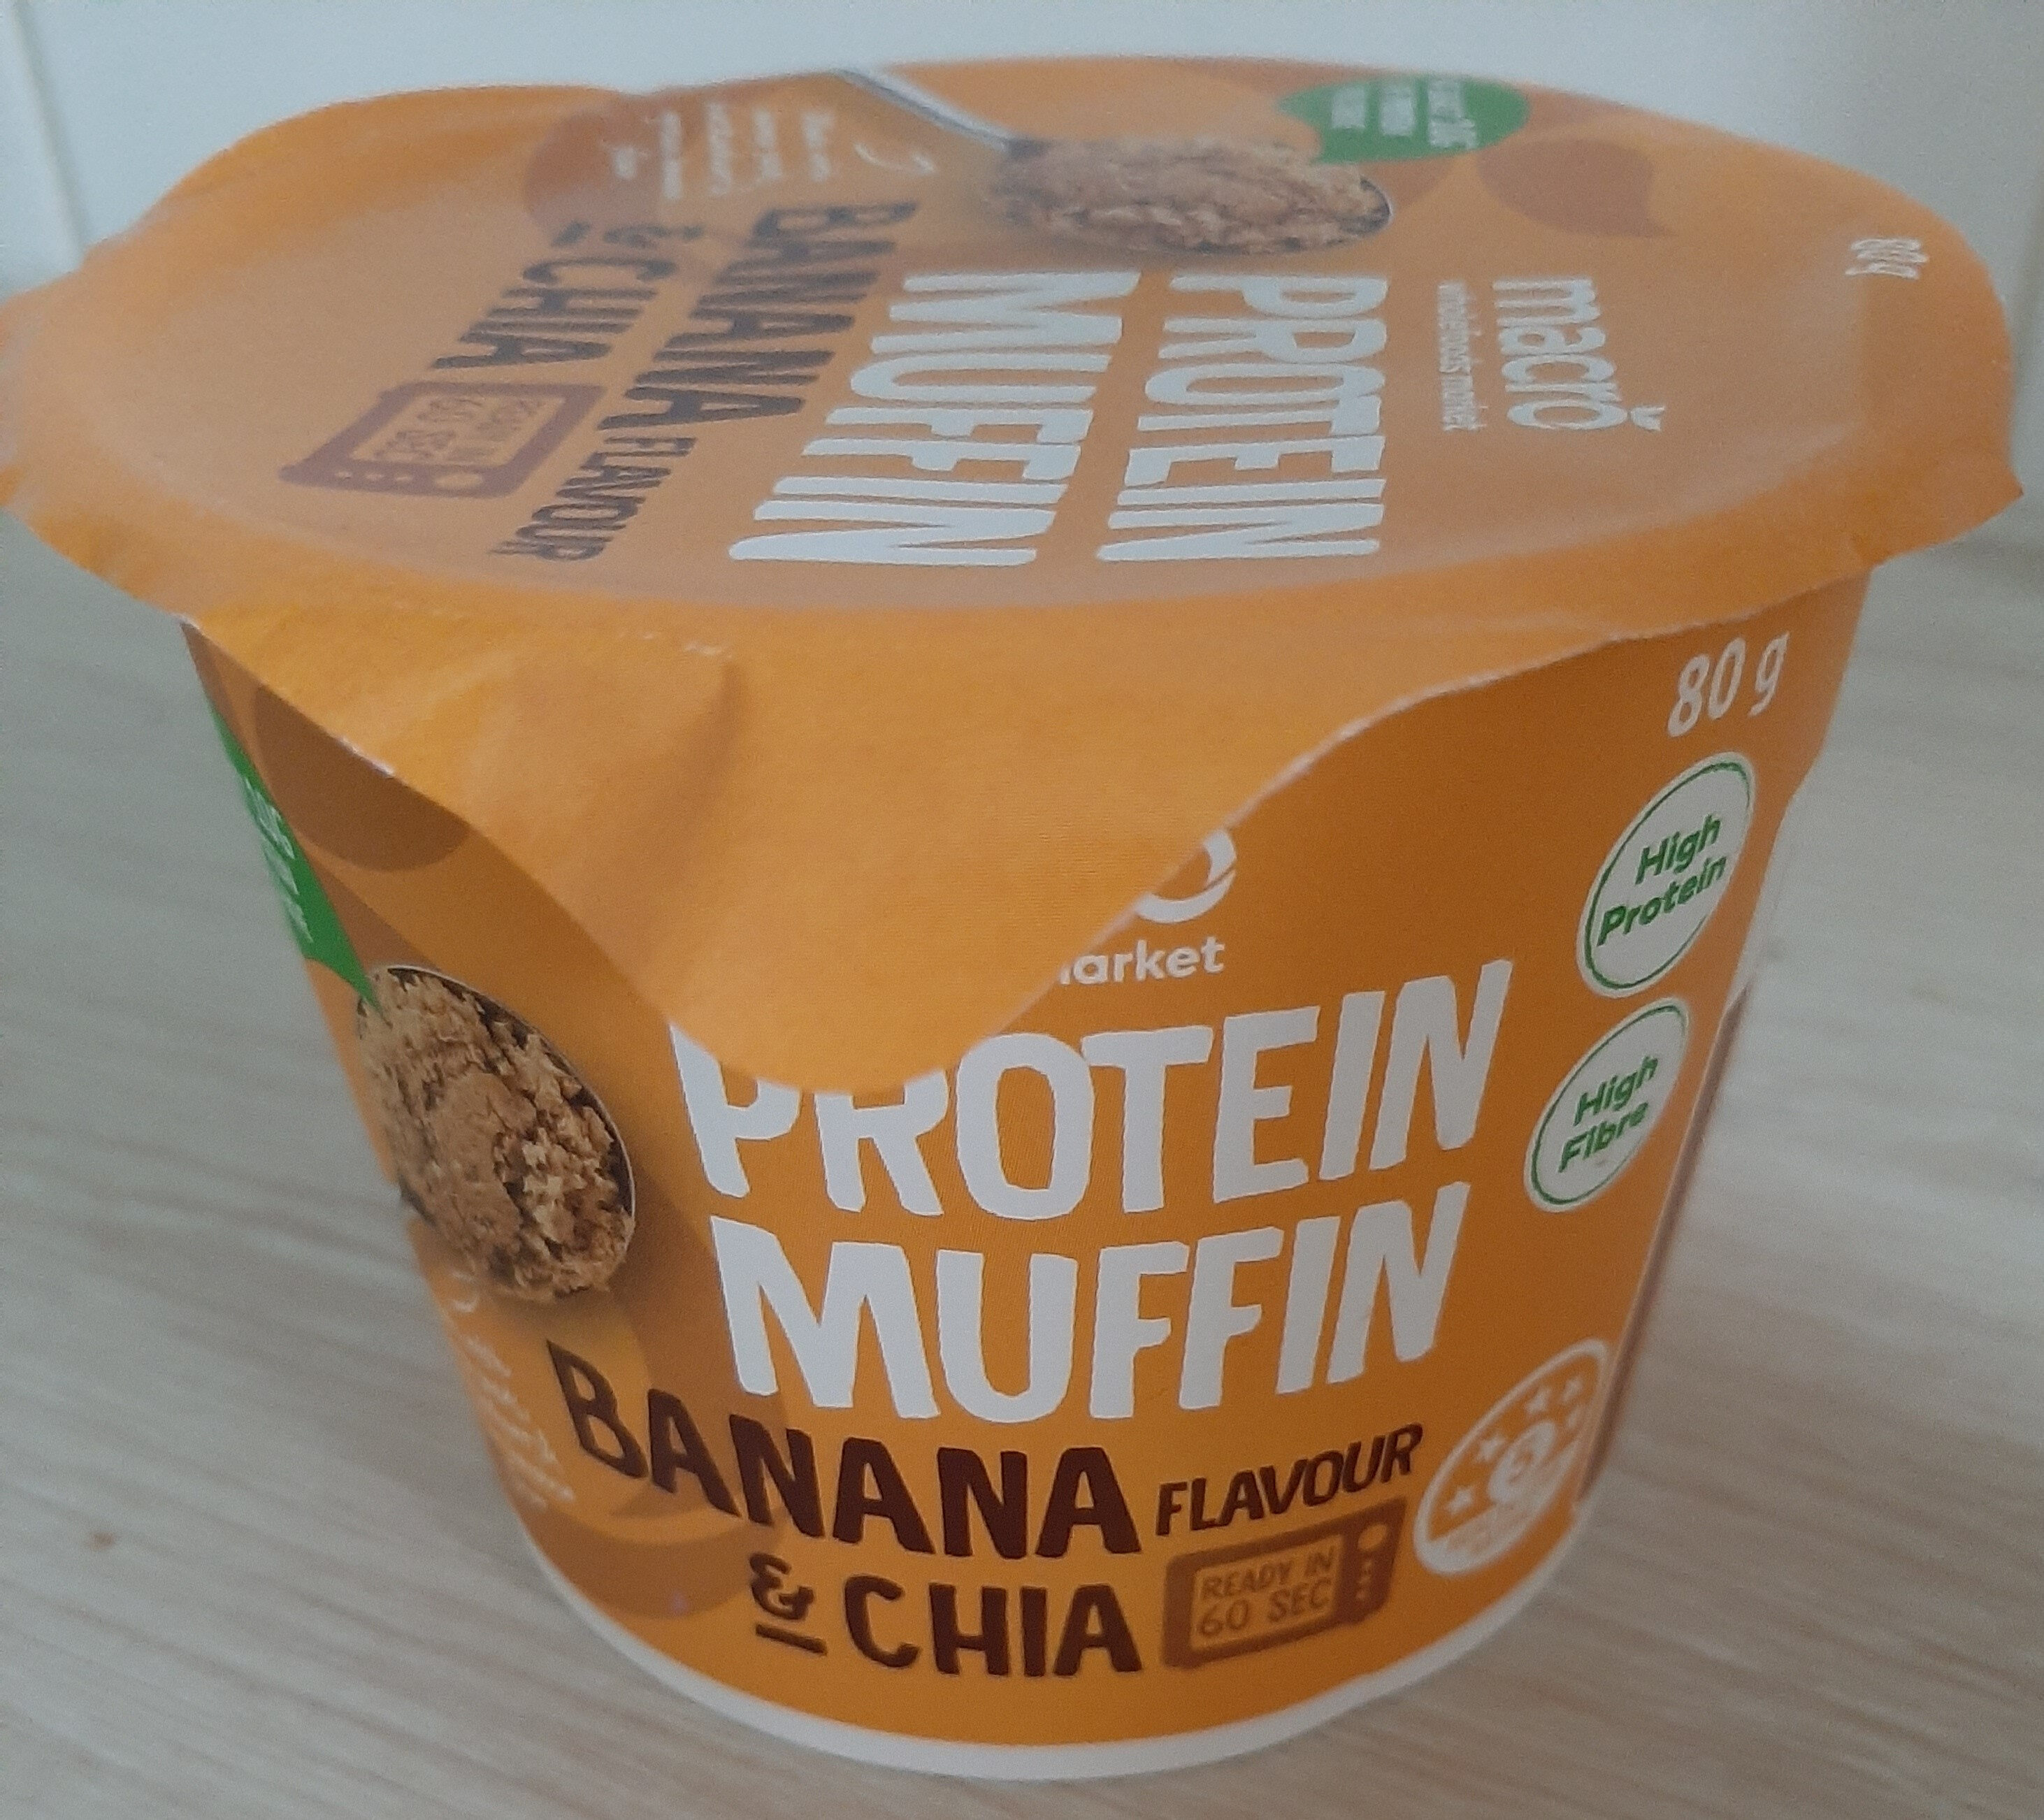 protein muffin banana and chia flavour - Product - en